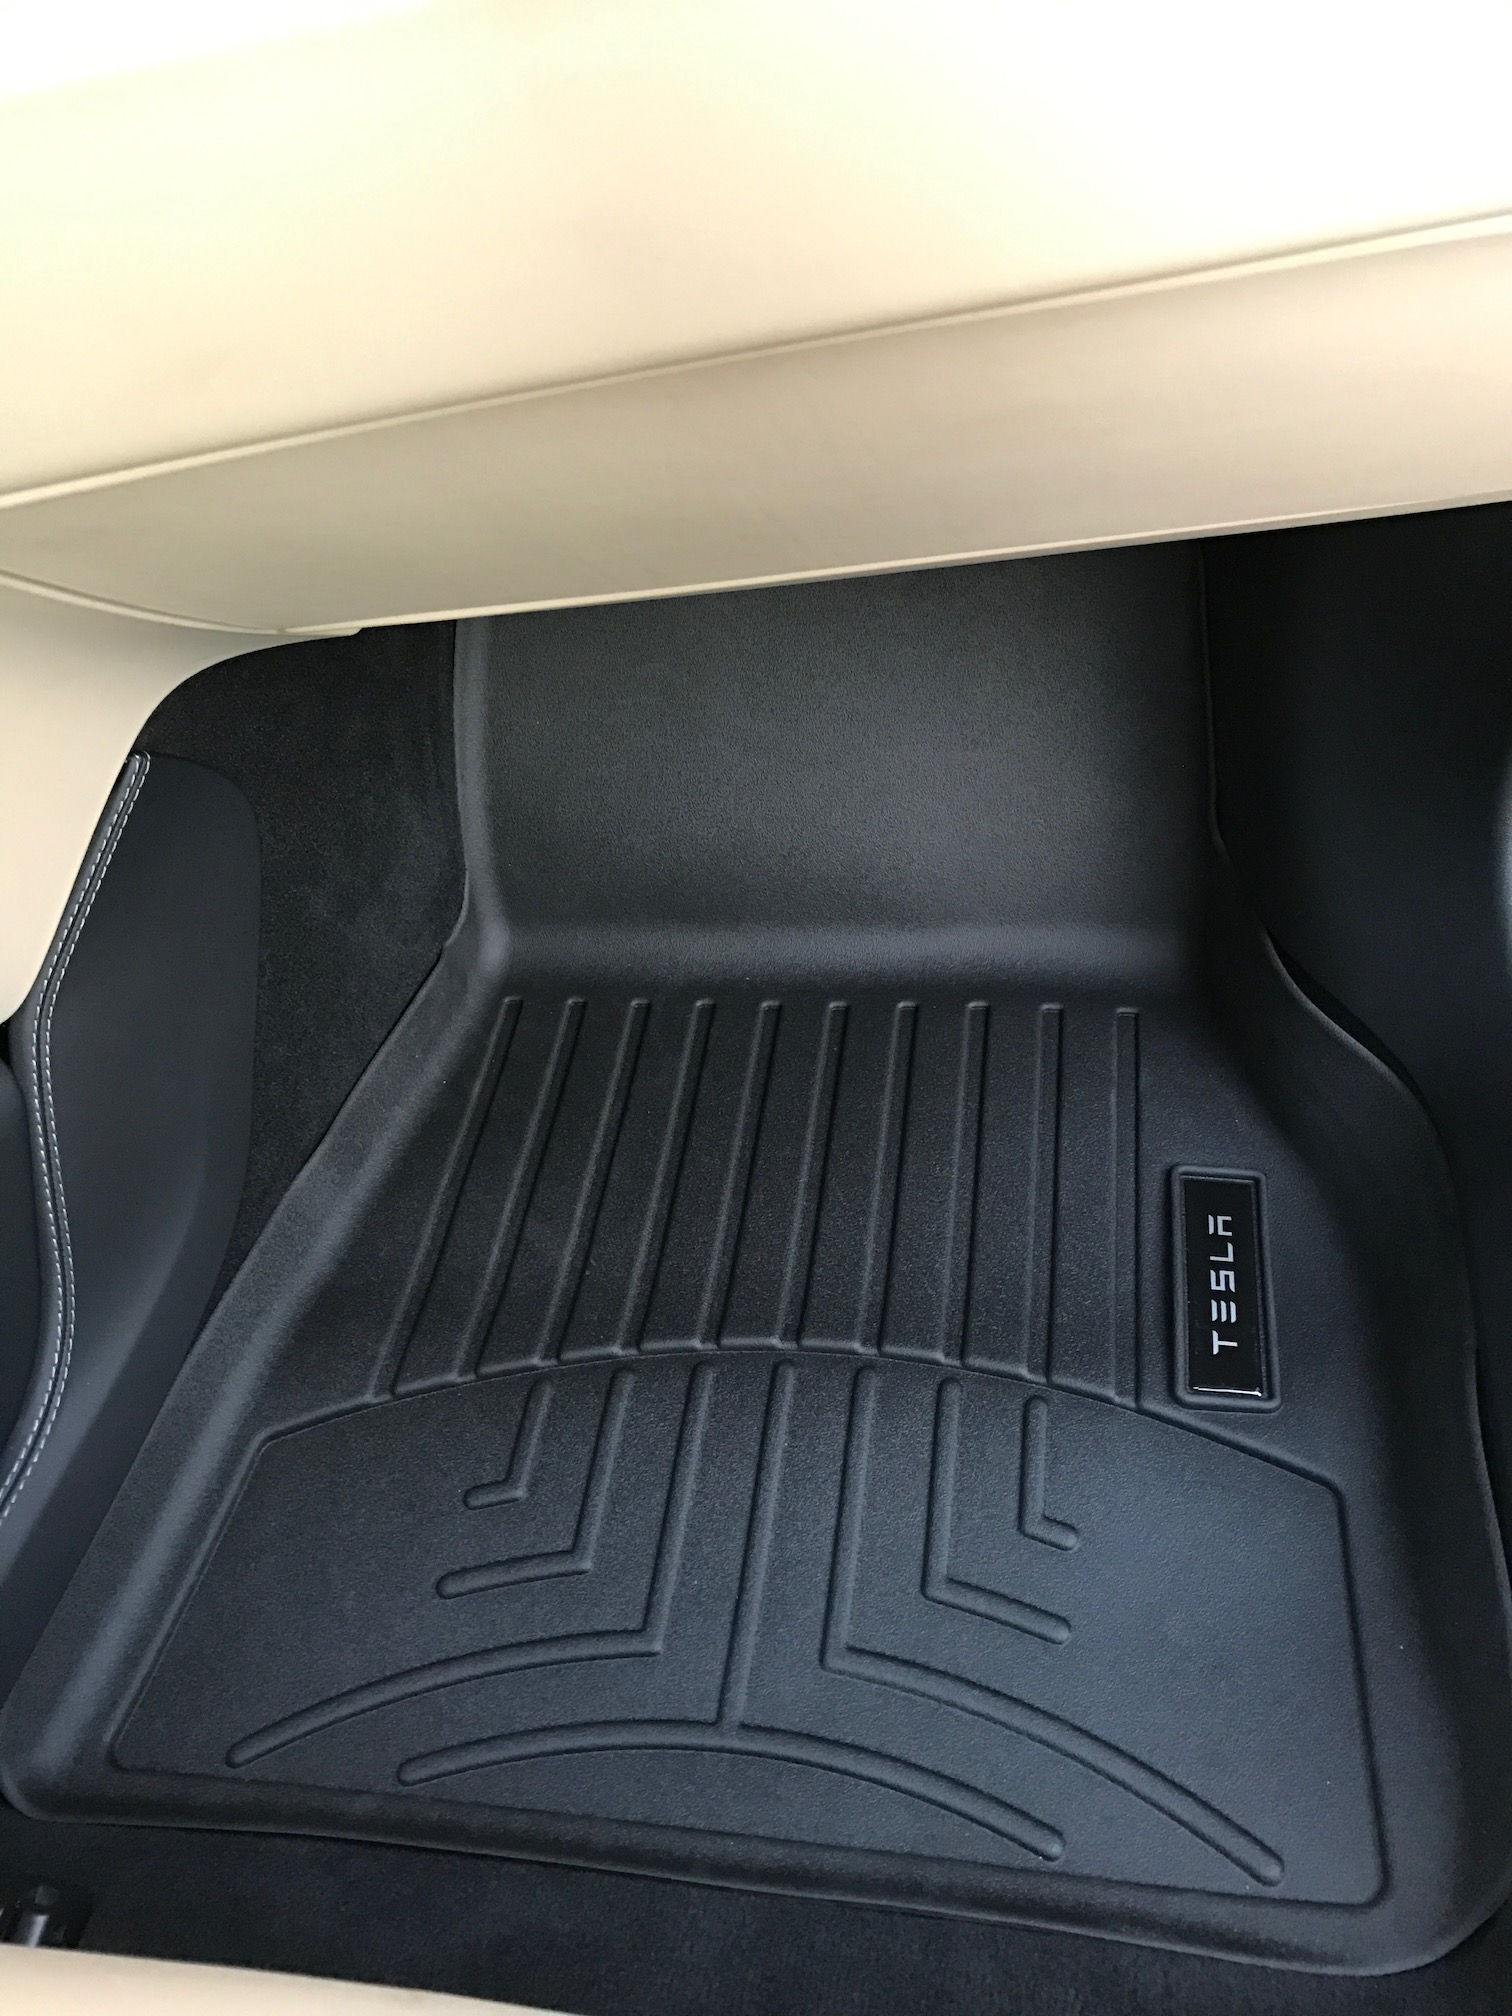 Passenger side floor liner mat (Installed)